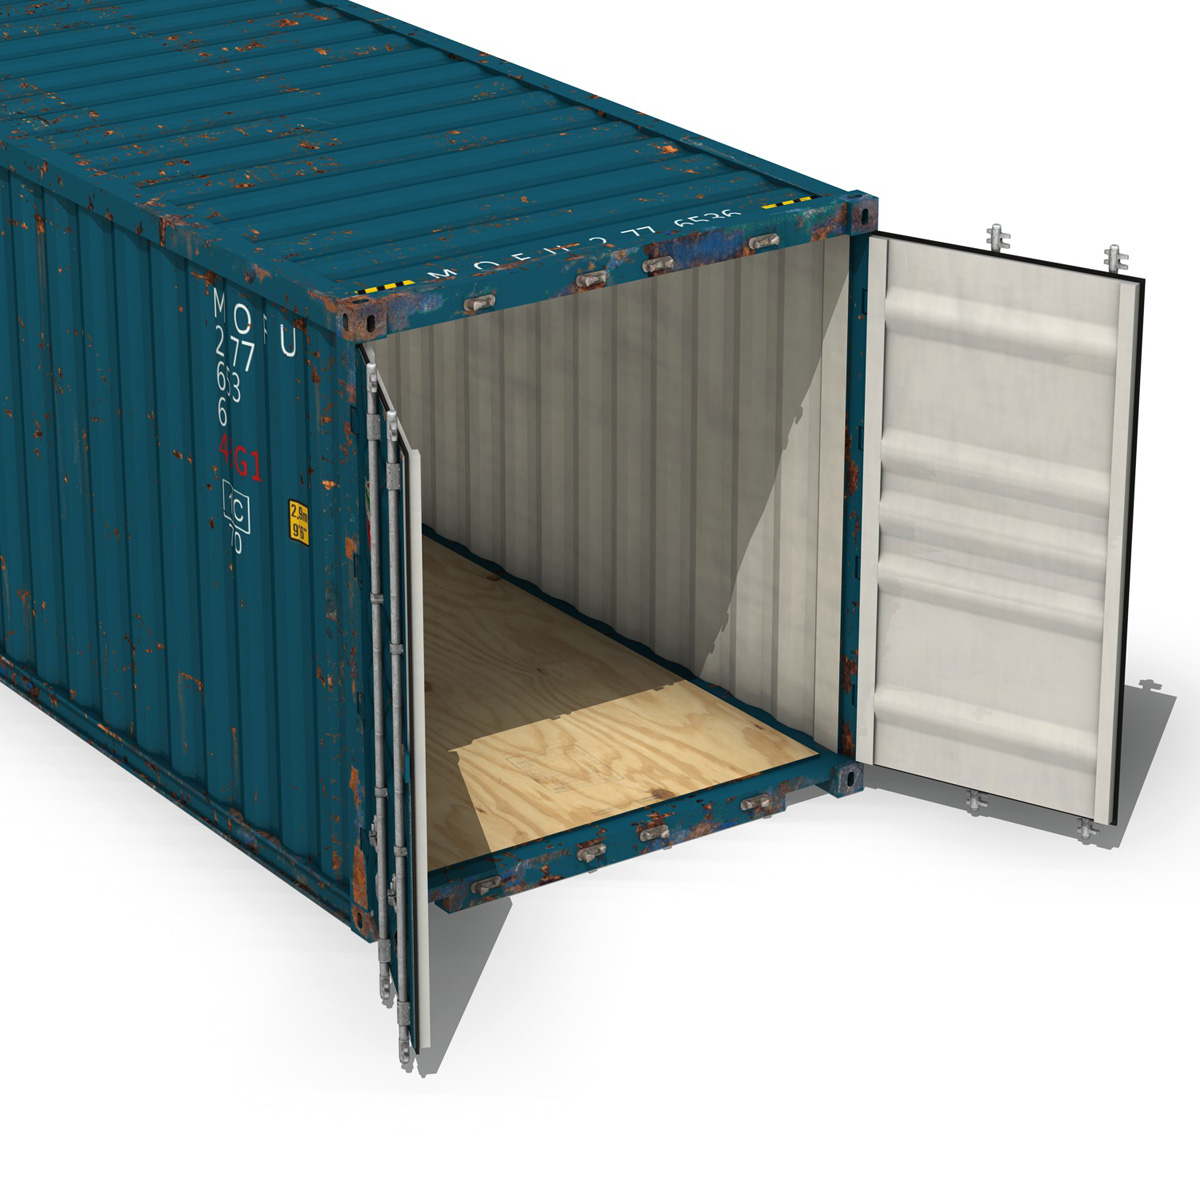 40ft shipping container – mol 3d model 3ds fbx lwo lw lws obj c4d 265139